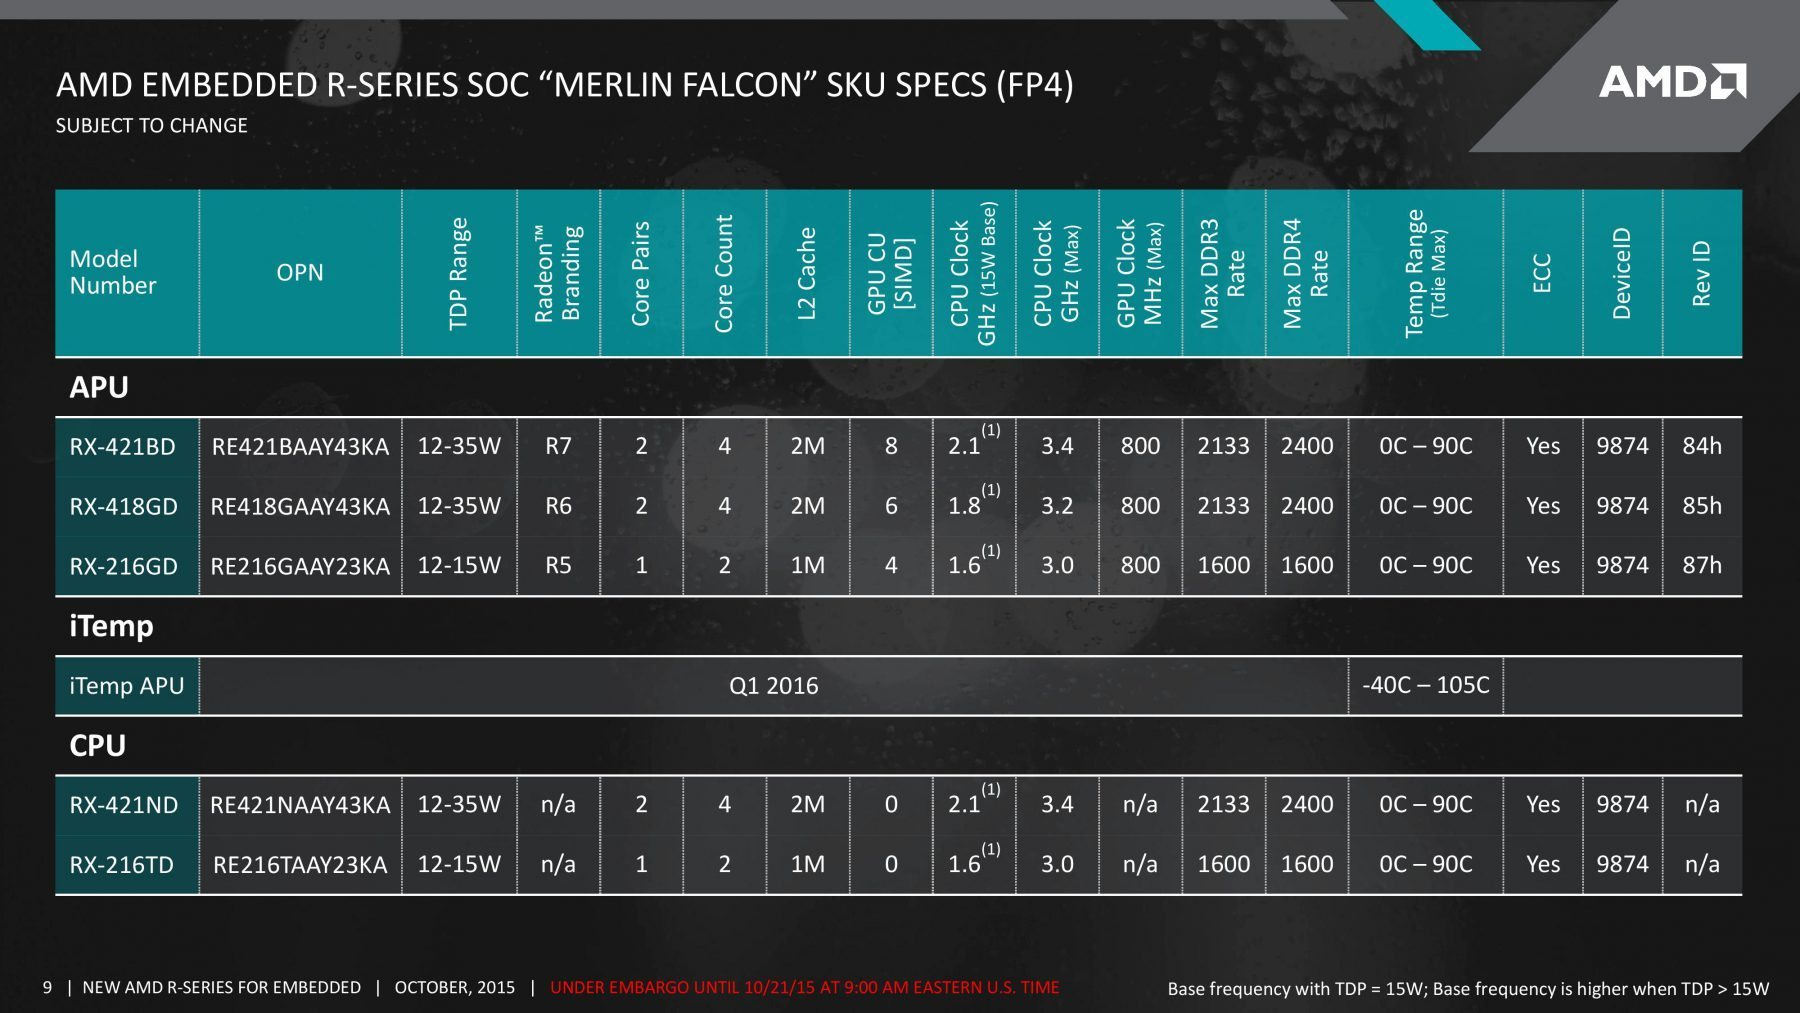 AMD-Merlin-Falcon-SOC-Carrizo-APU_R-Series-Lineup